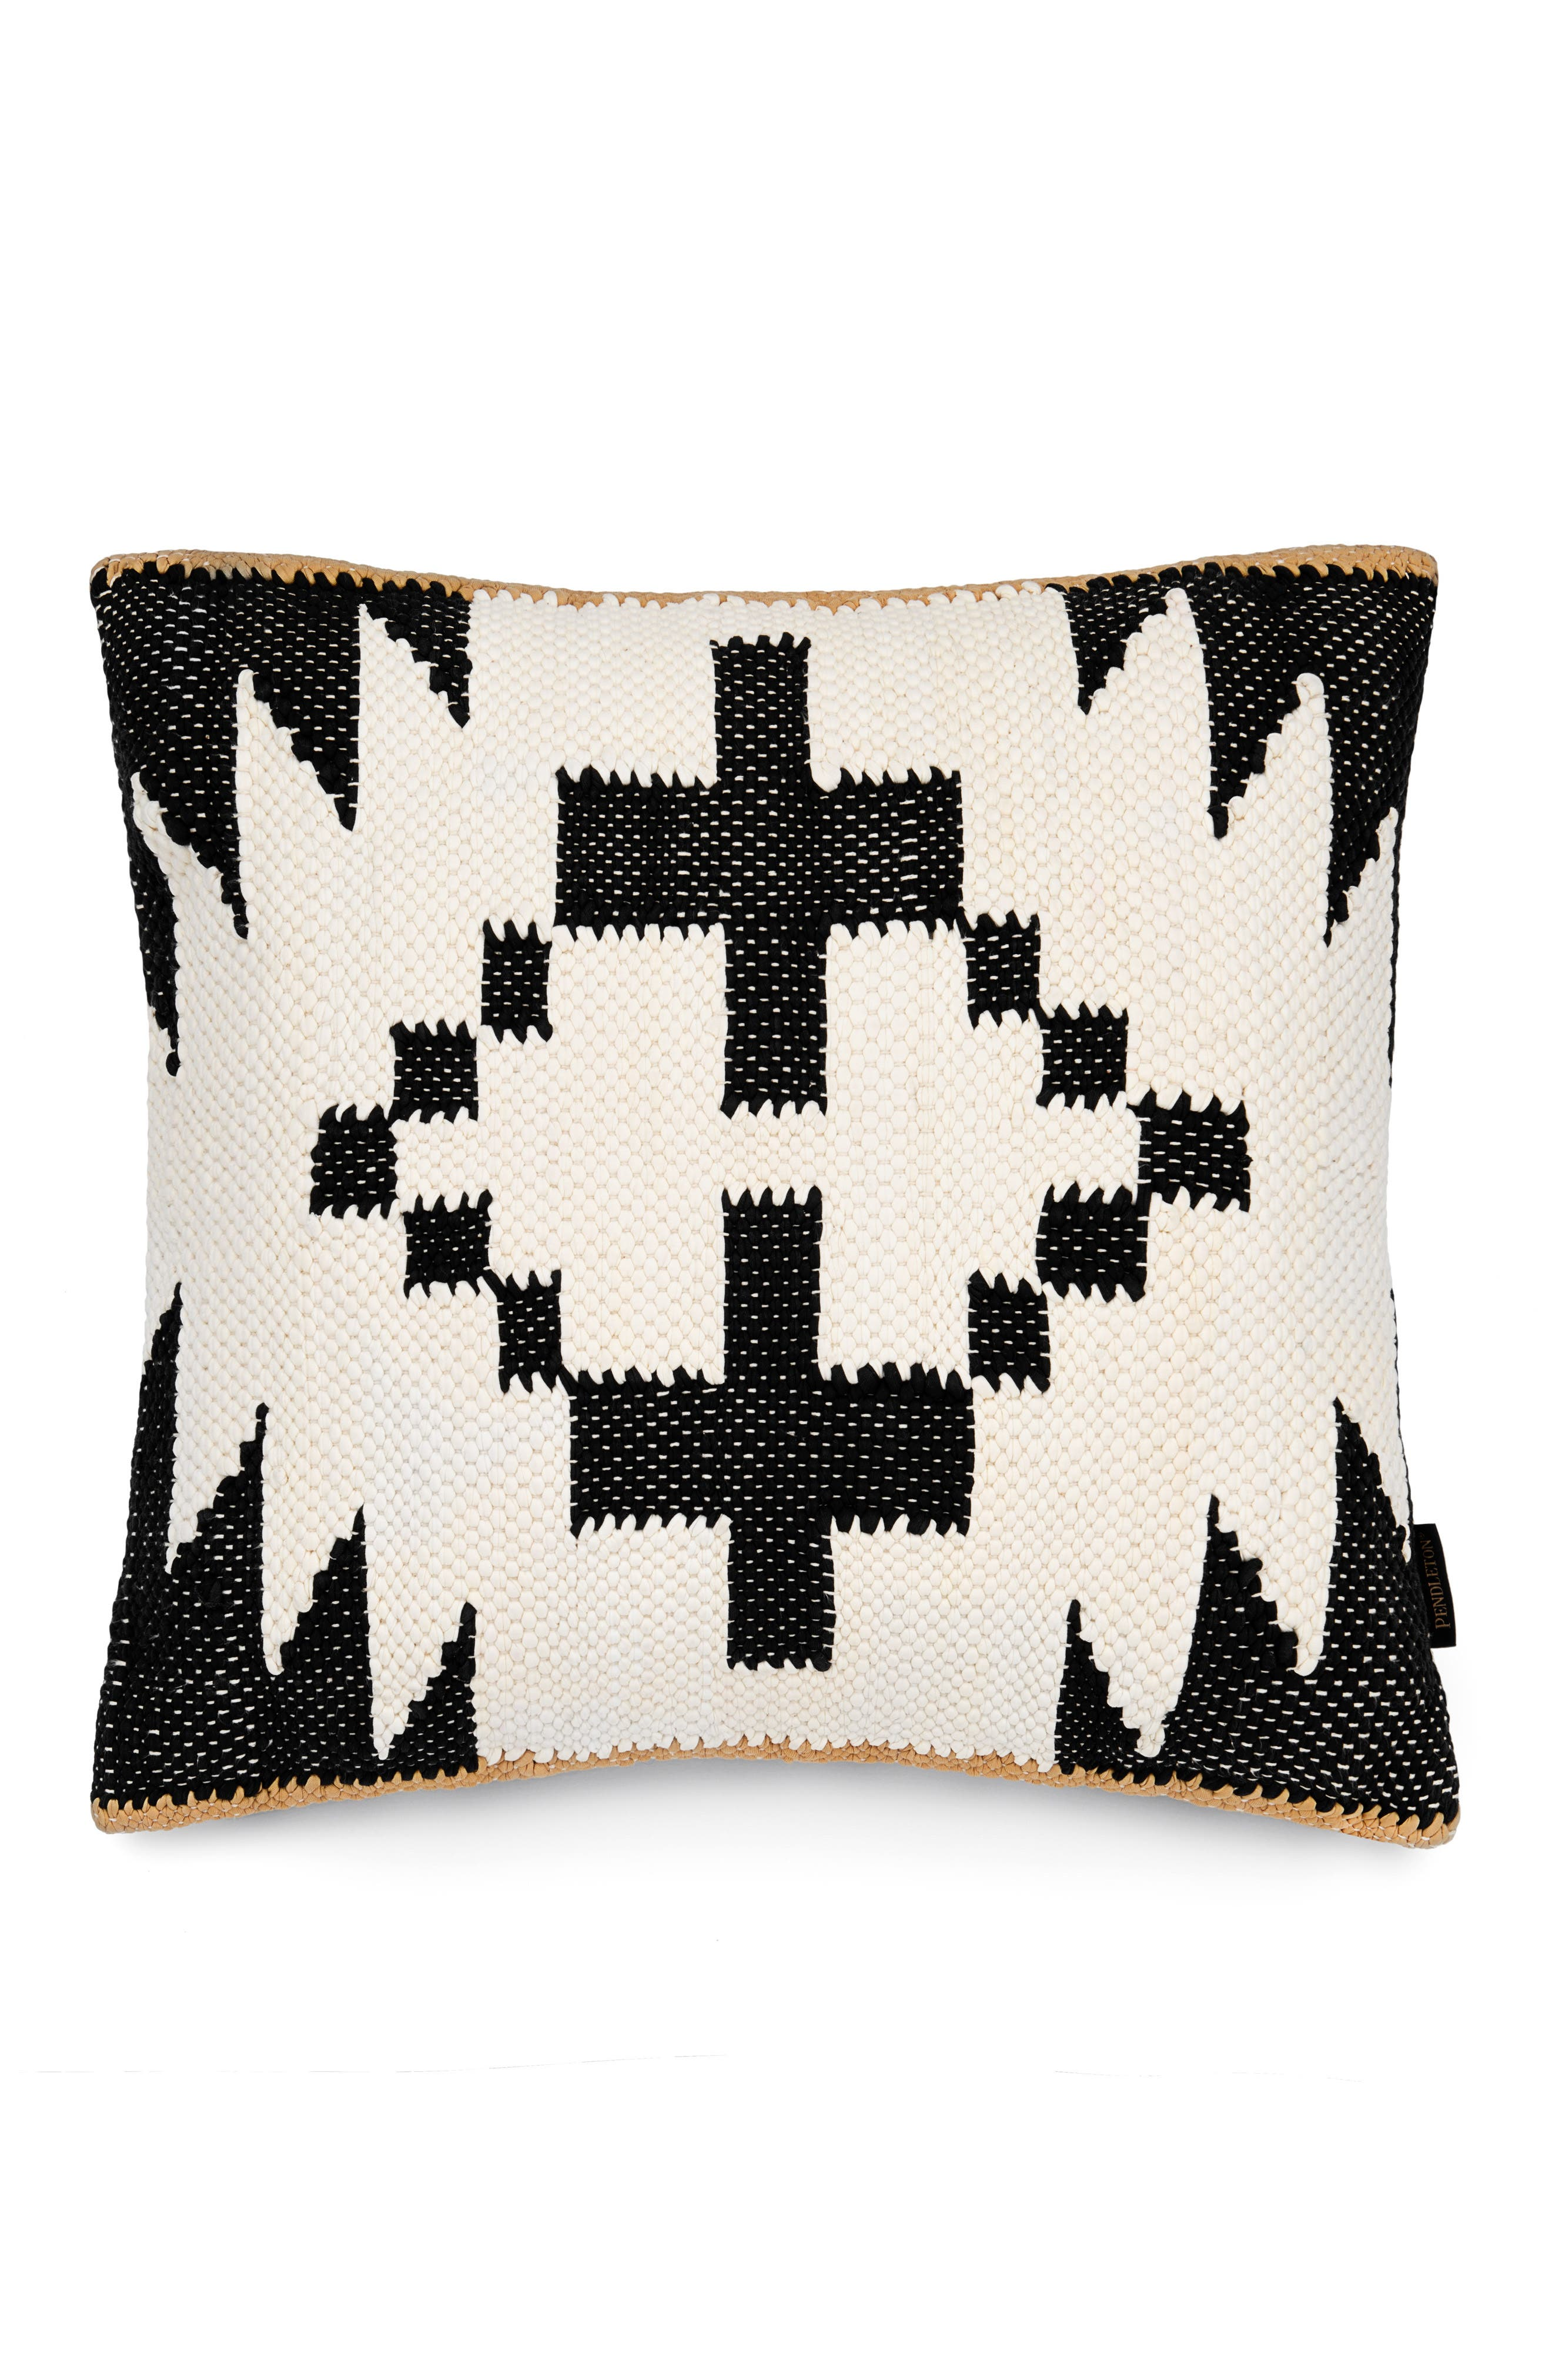 Main Image - Pendleton Spider Rock Chindi Oversize Accent Pillow